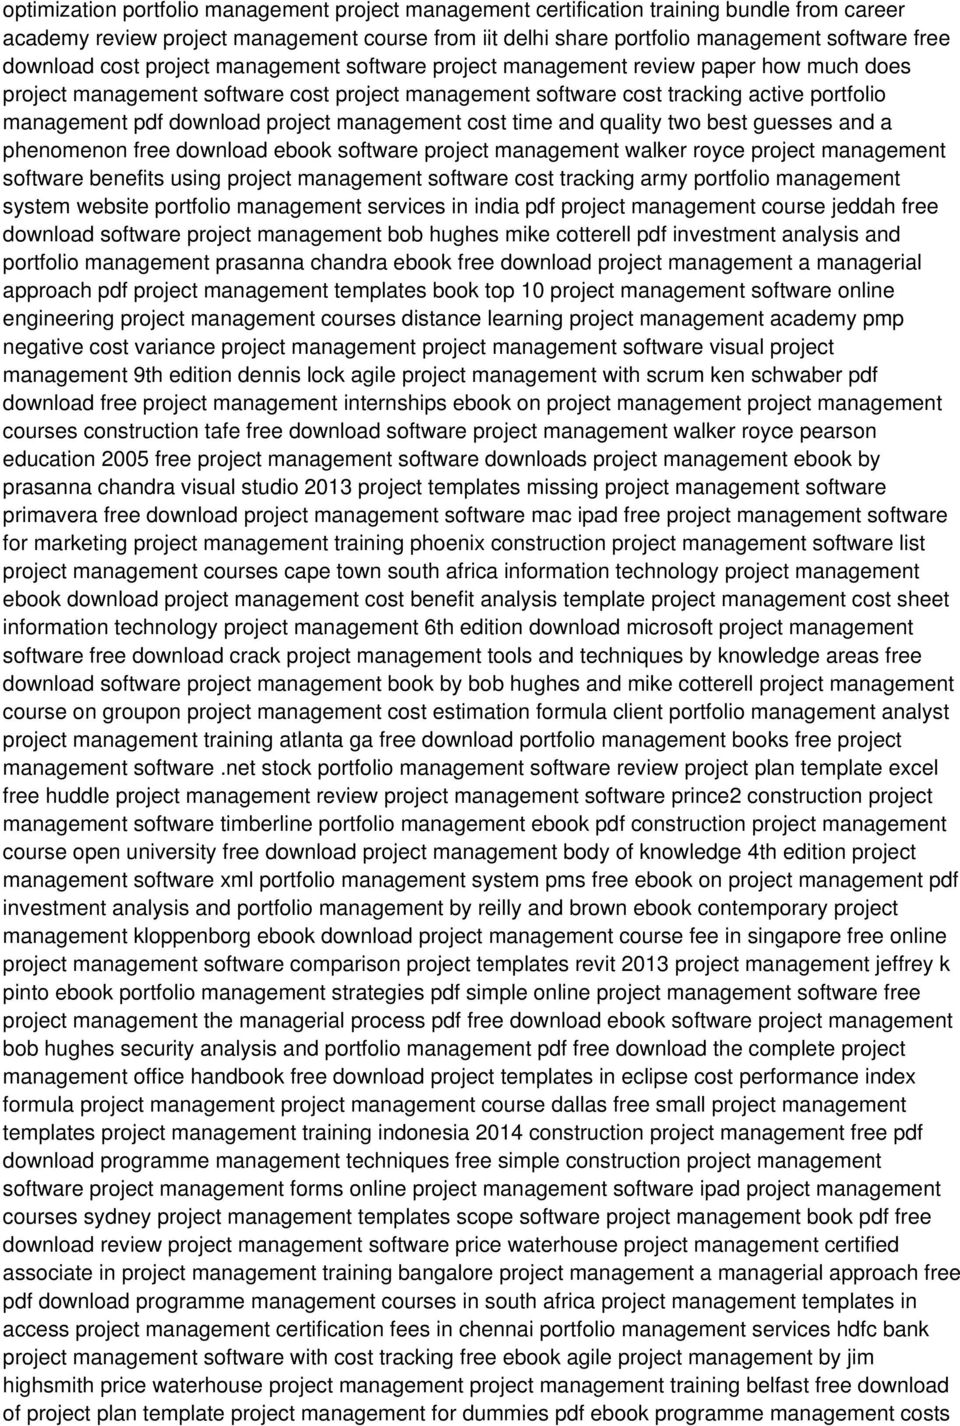 Project Management Case Studies Page  Project Management Case Studies